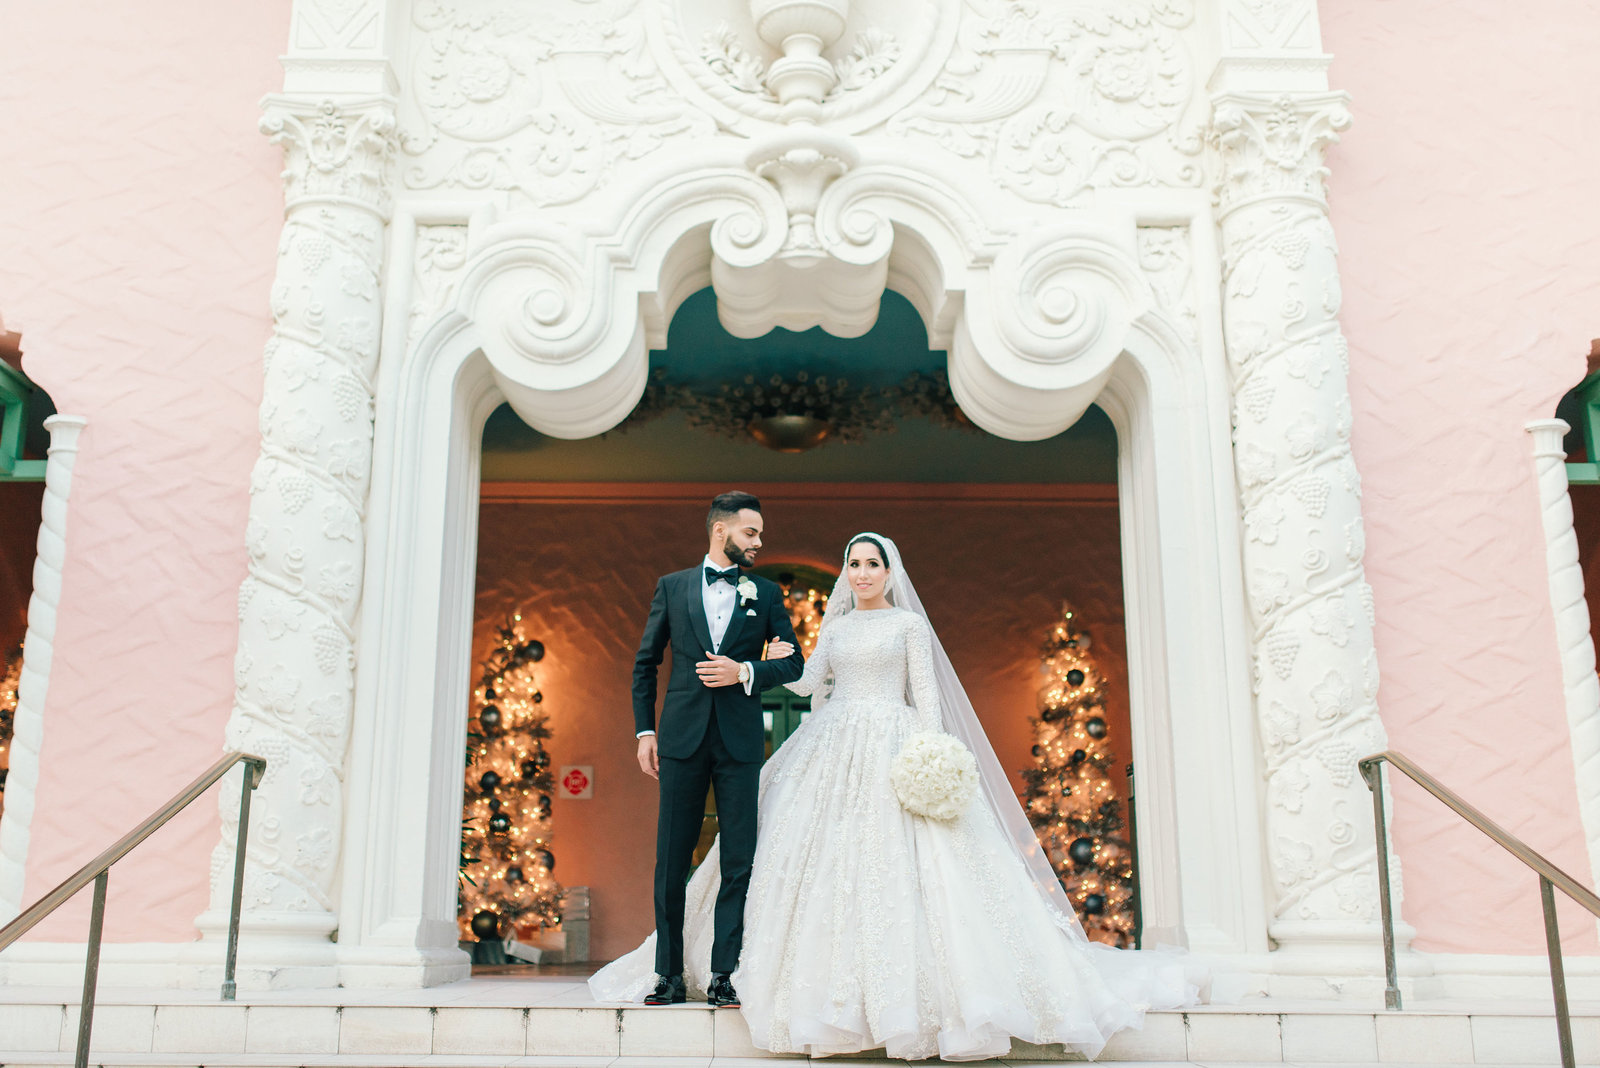 LTP_61Noor & Ahmad Vinoy Renaissance Wedding in St. Petersburg by Ledia Tashi Photography90